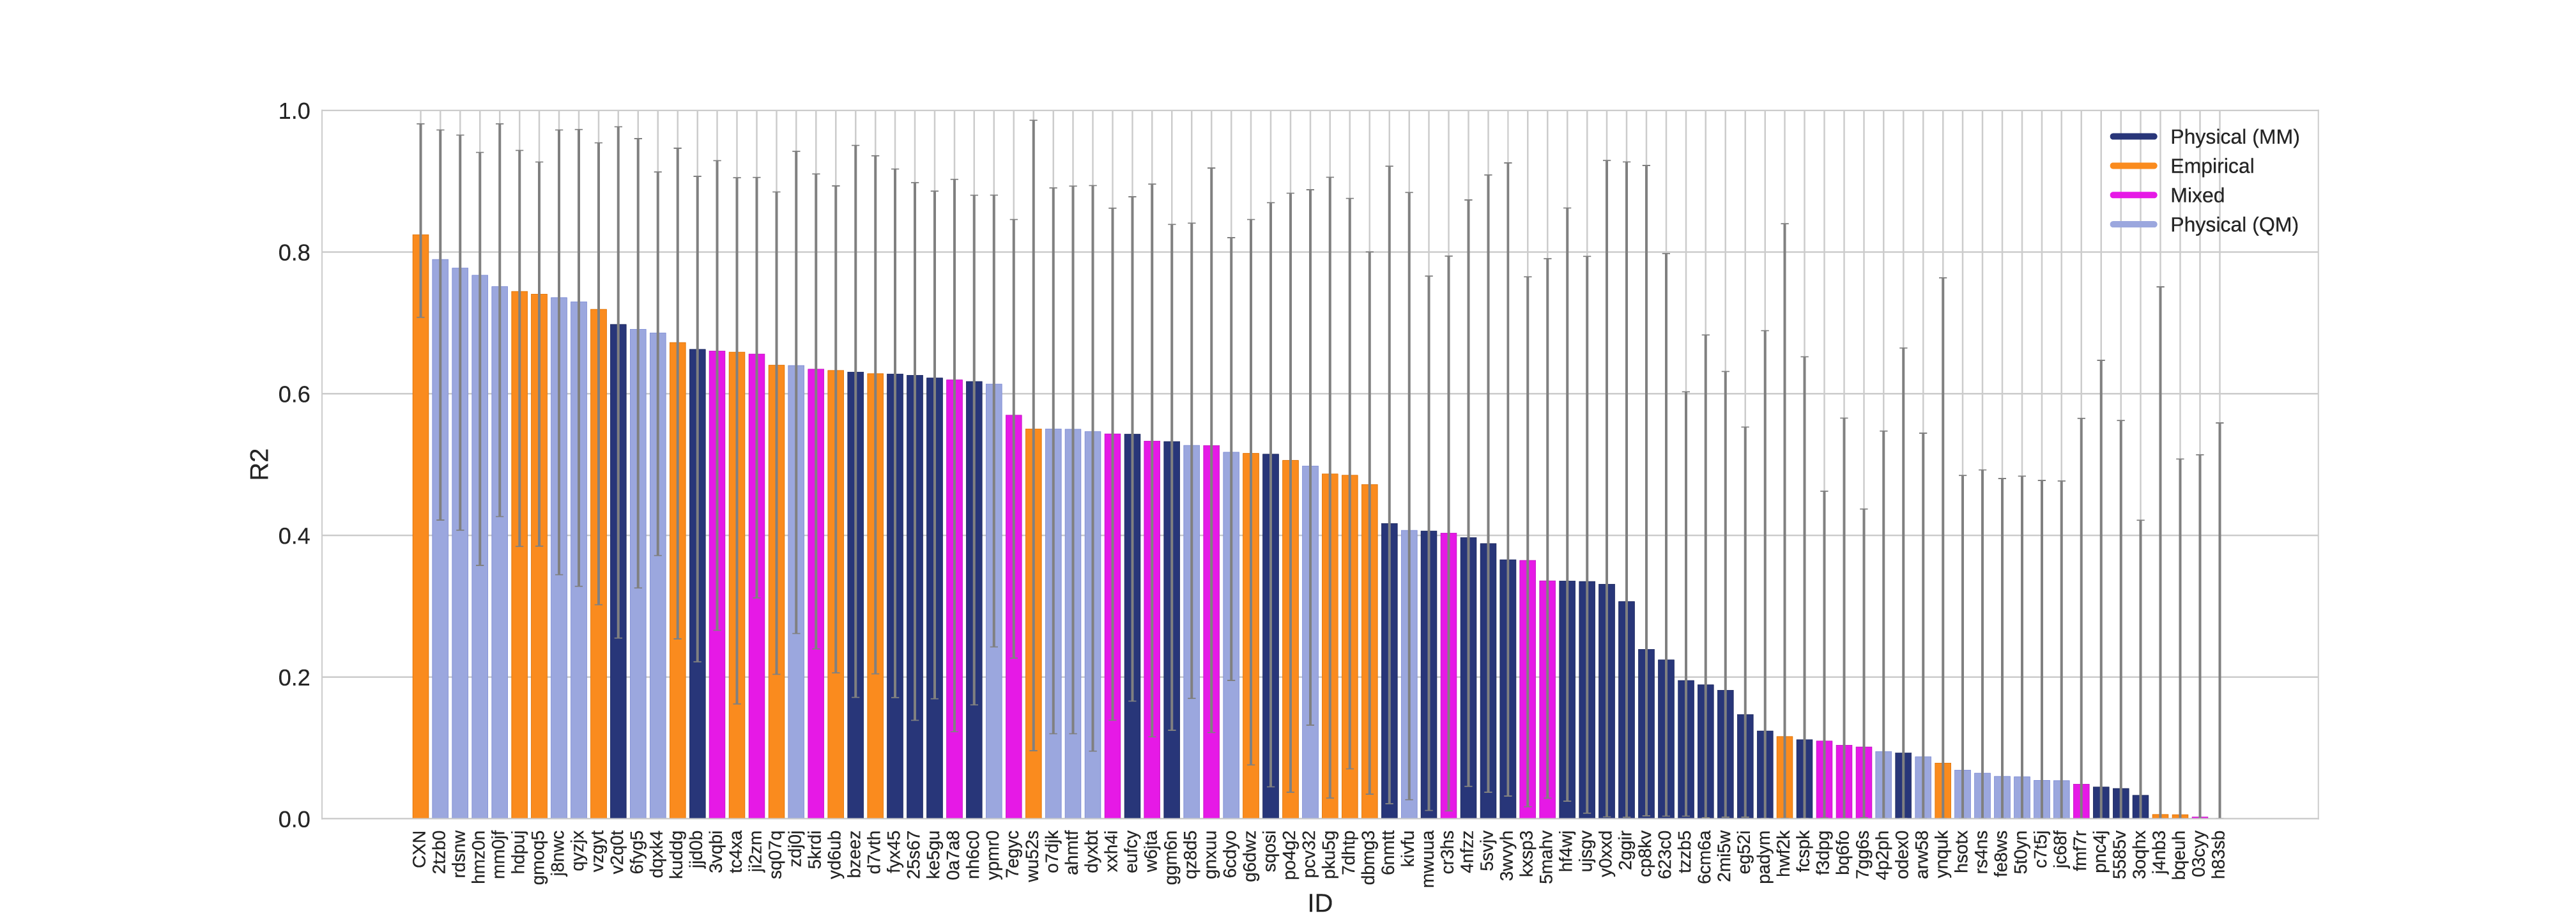 R2 values colored by method type